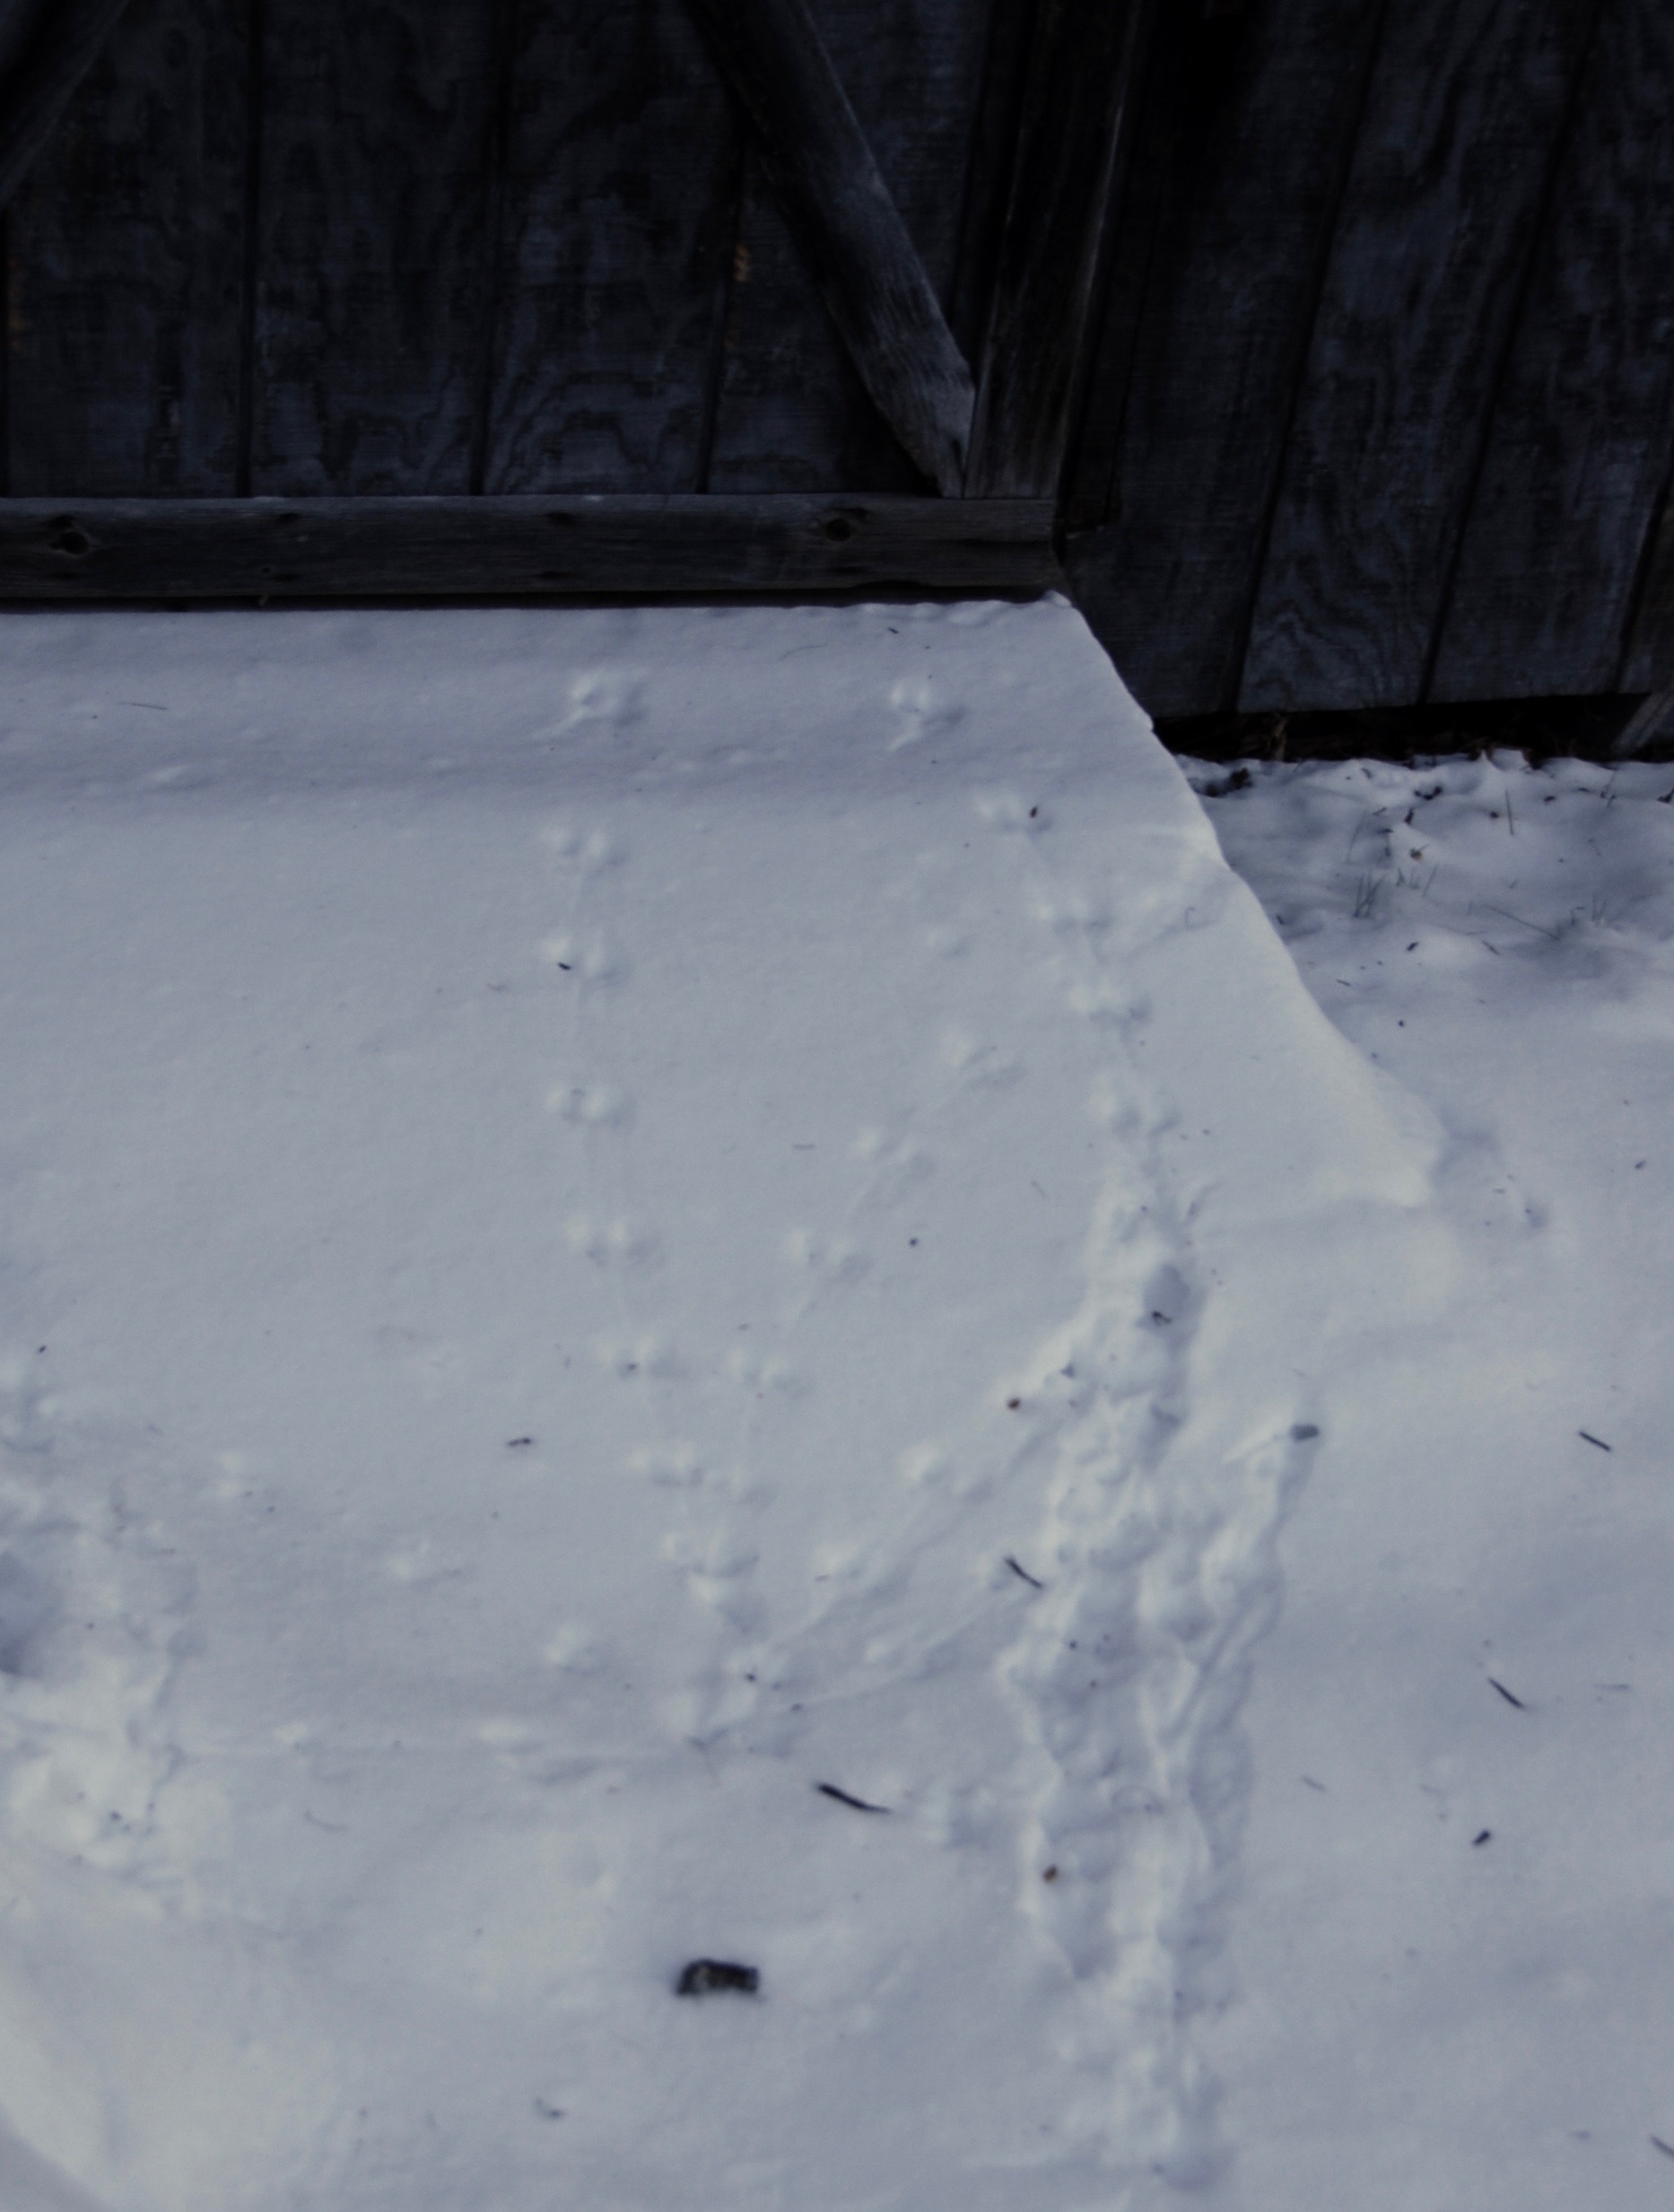 Are these squirrel tracks in the snow near our shed? It doesn't look like they went under the door, but maybe they climbed up it?